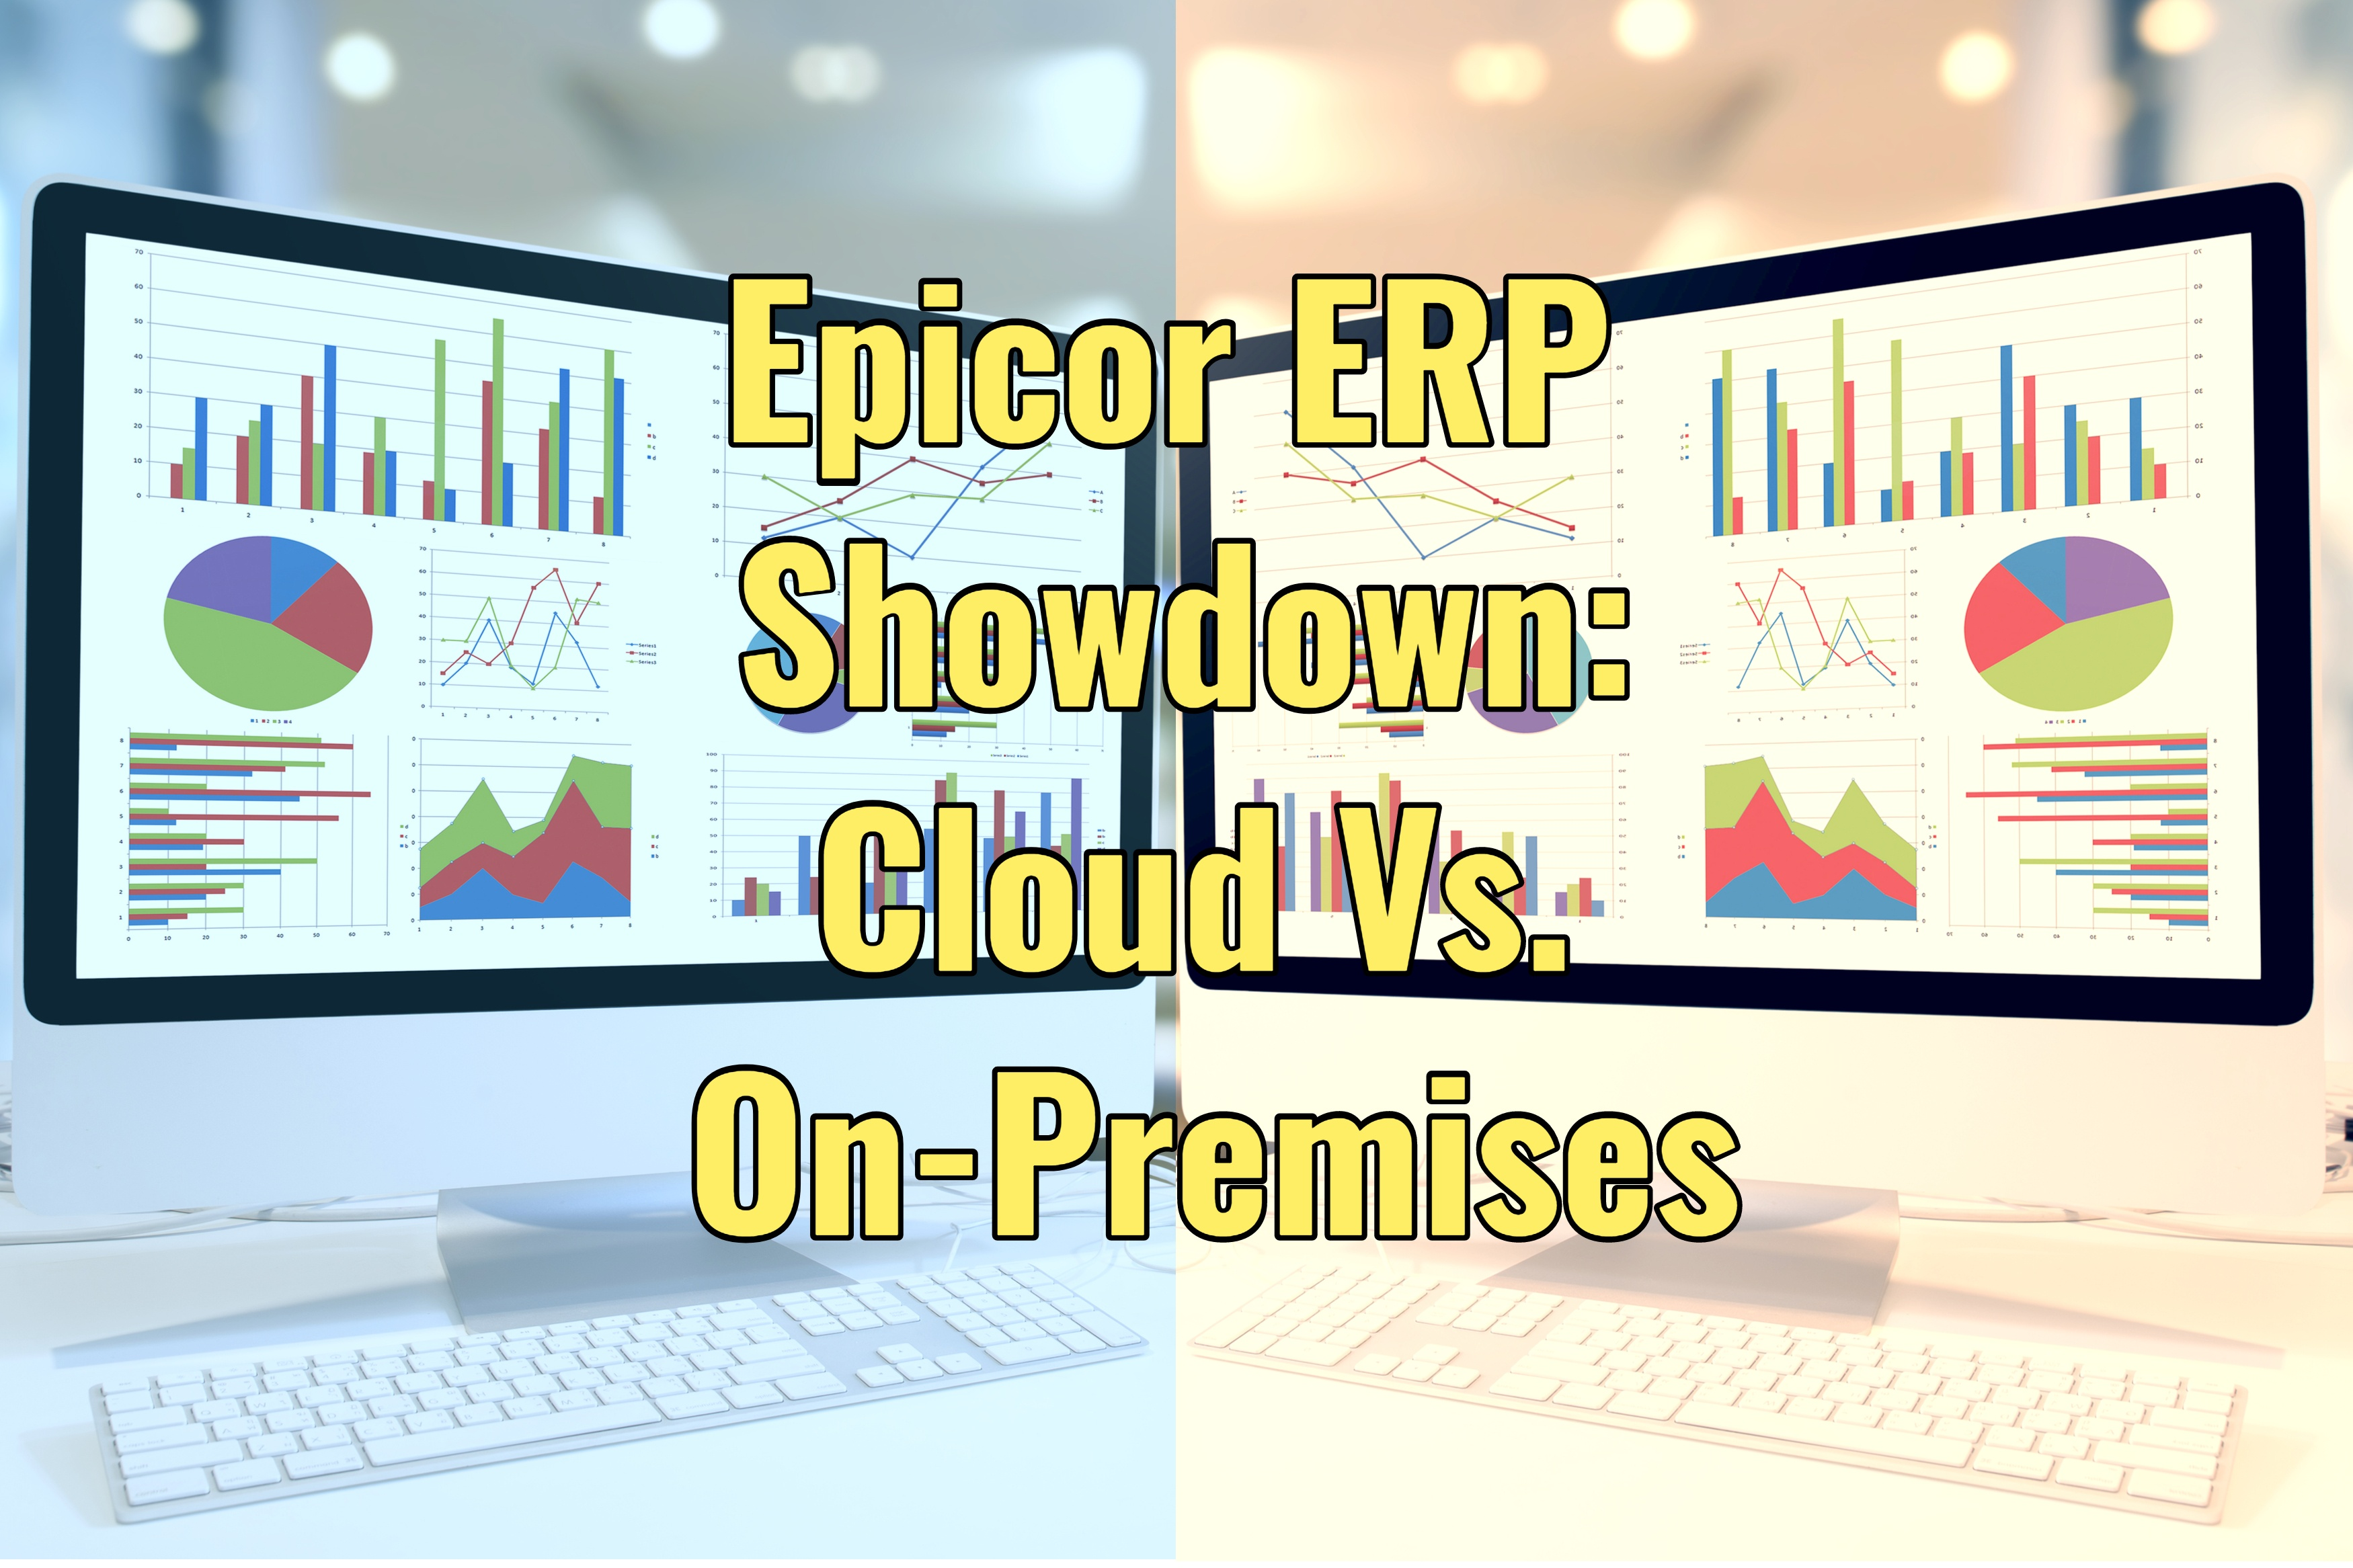 Epicor ERP Showdown: Cloud Vs. On-Premises